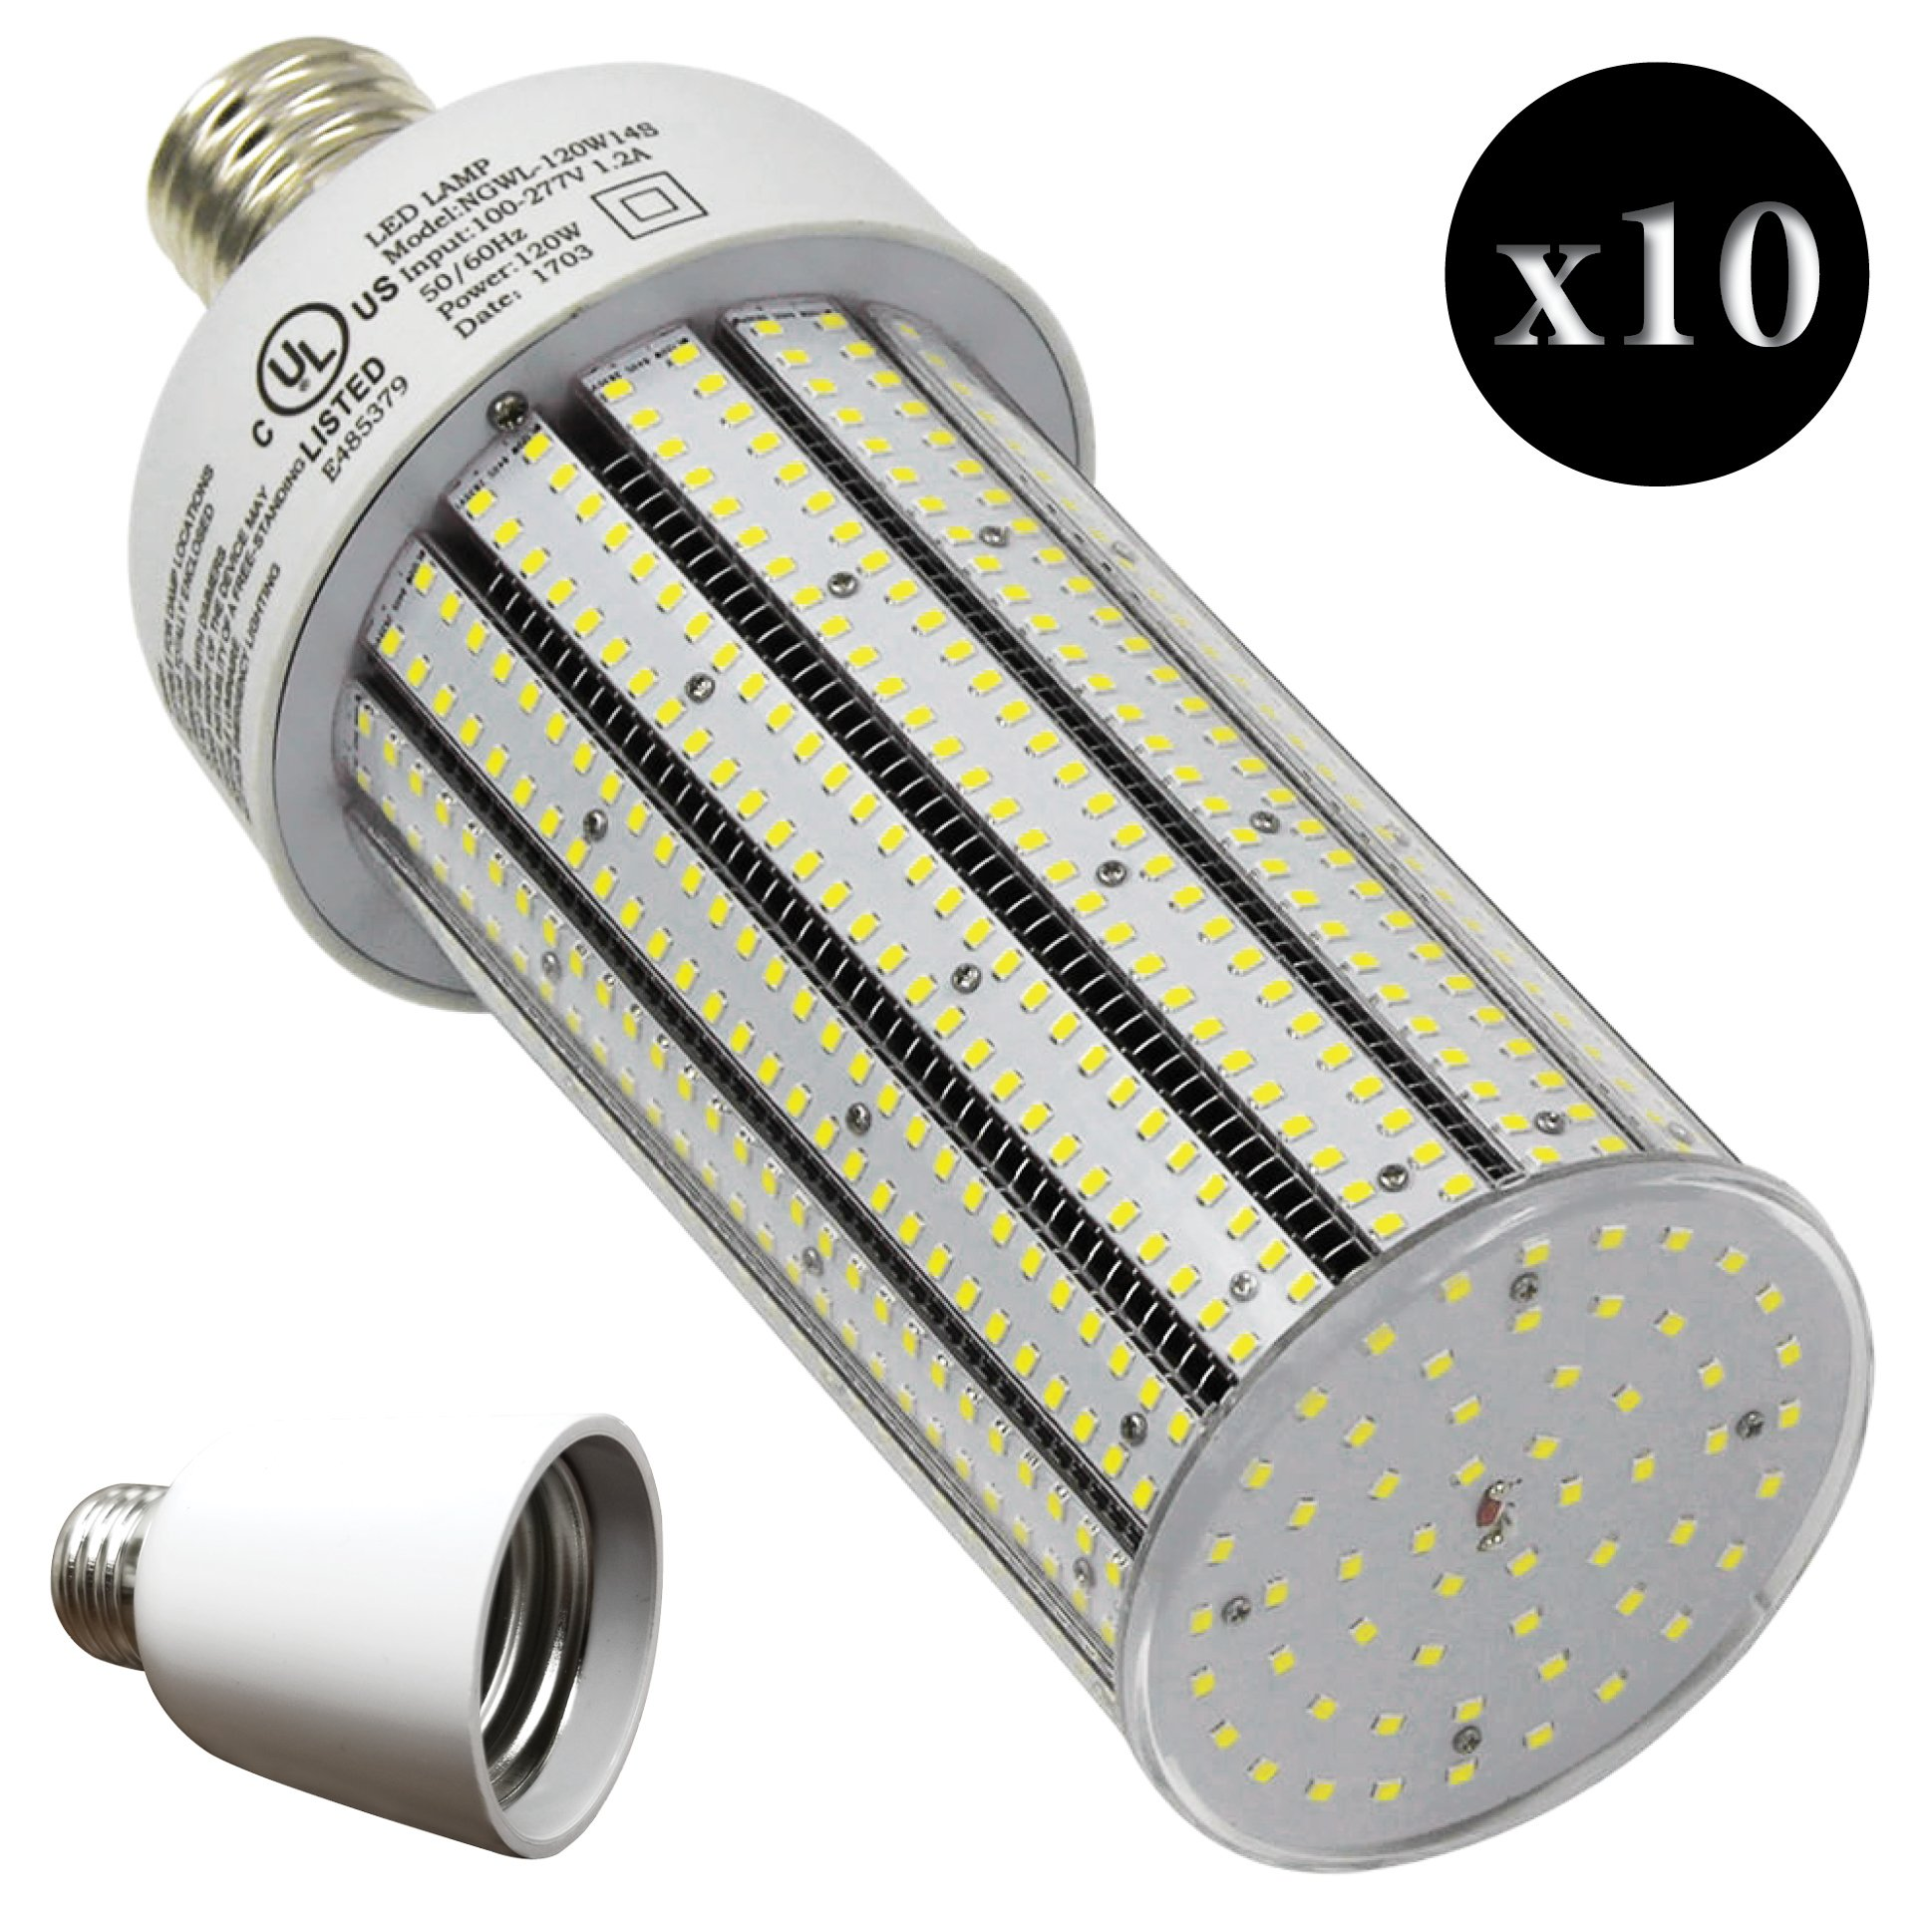 QTY 10 CC120-39 + 10 Adapters LED HIGH BAY SPORTS ARENA POST LED LIGHT E39 6500K WHITE 120W (EQUIVALENT TO 720W)